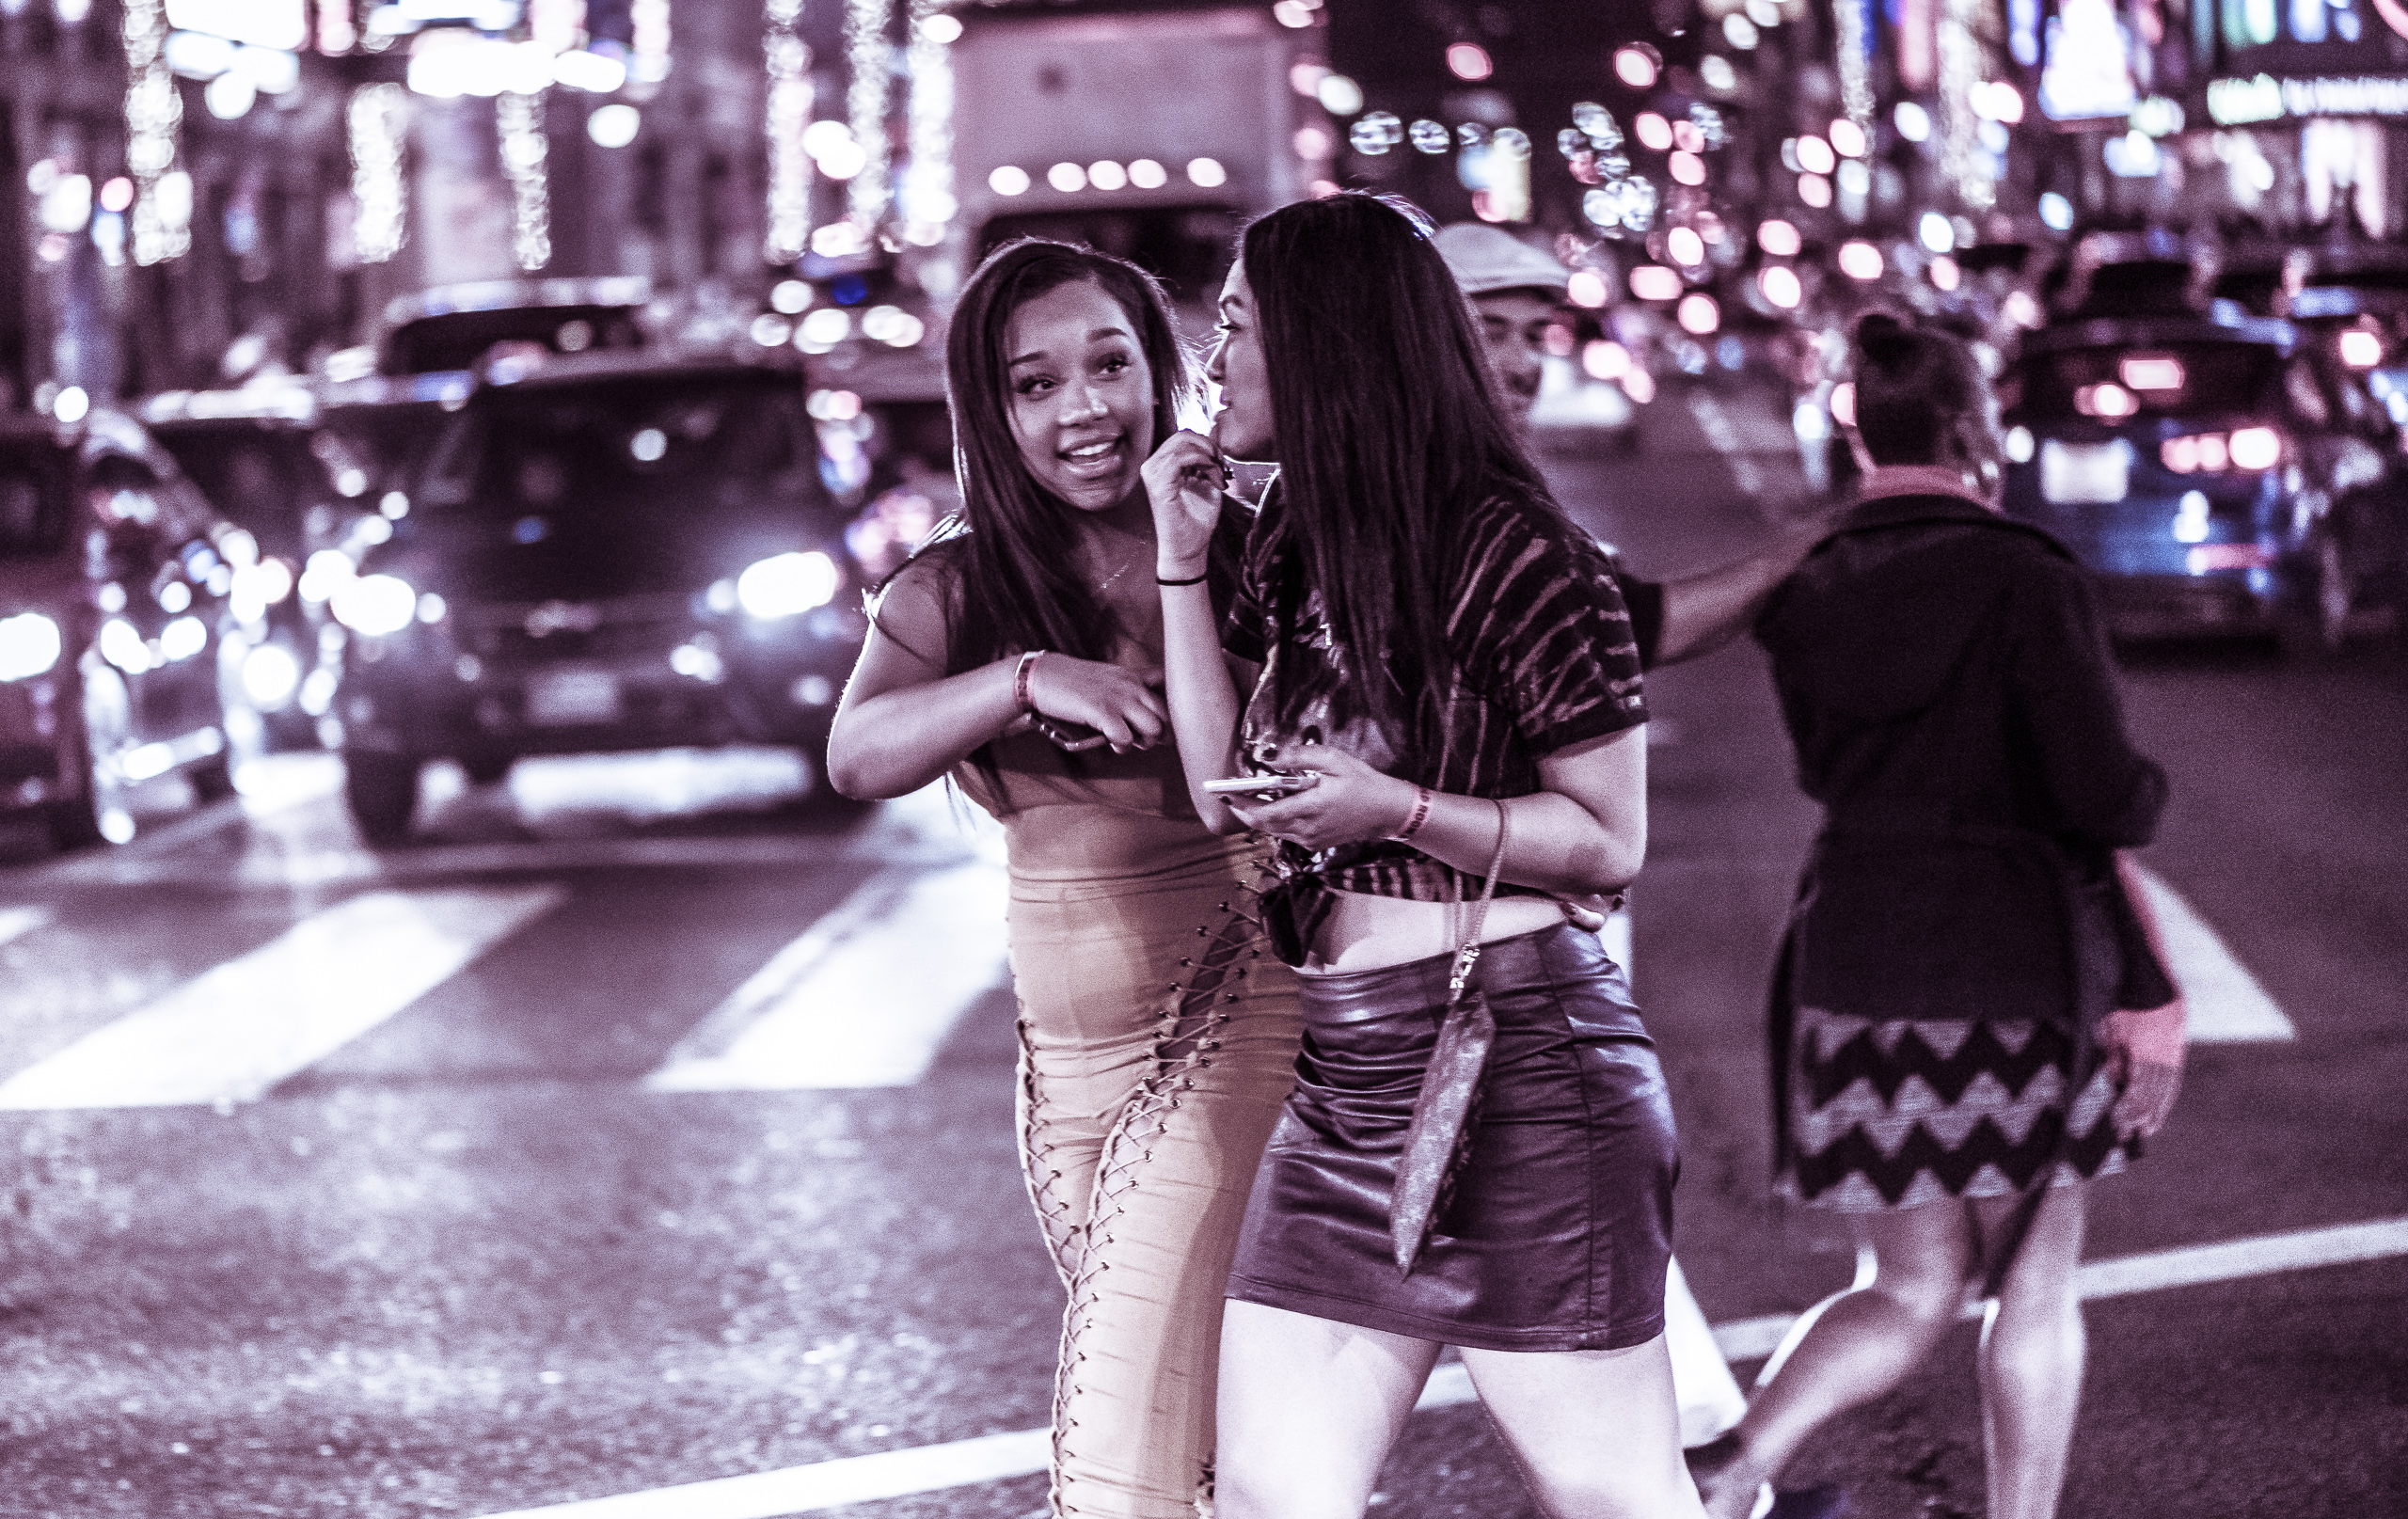 a woman in a lace-up catsuit and  a woman in a leather miniskirt walk across the street together